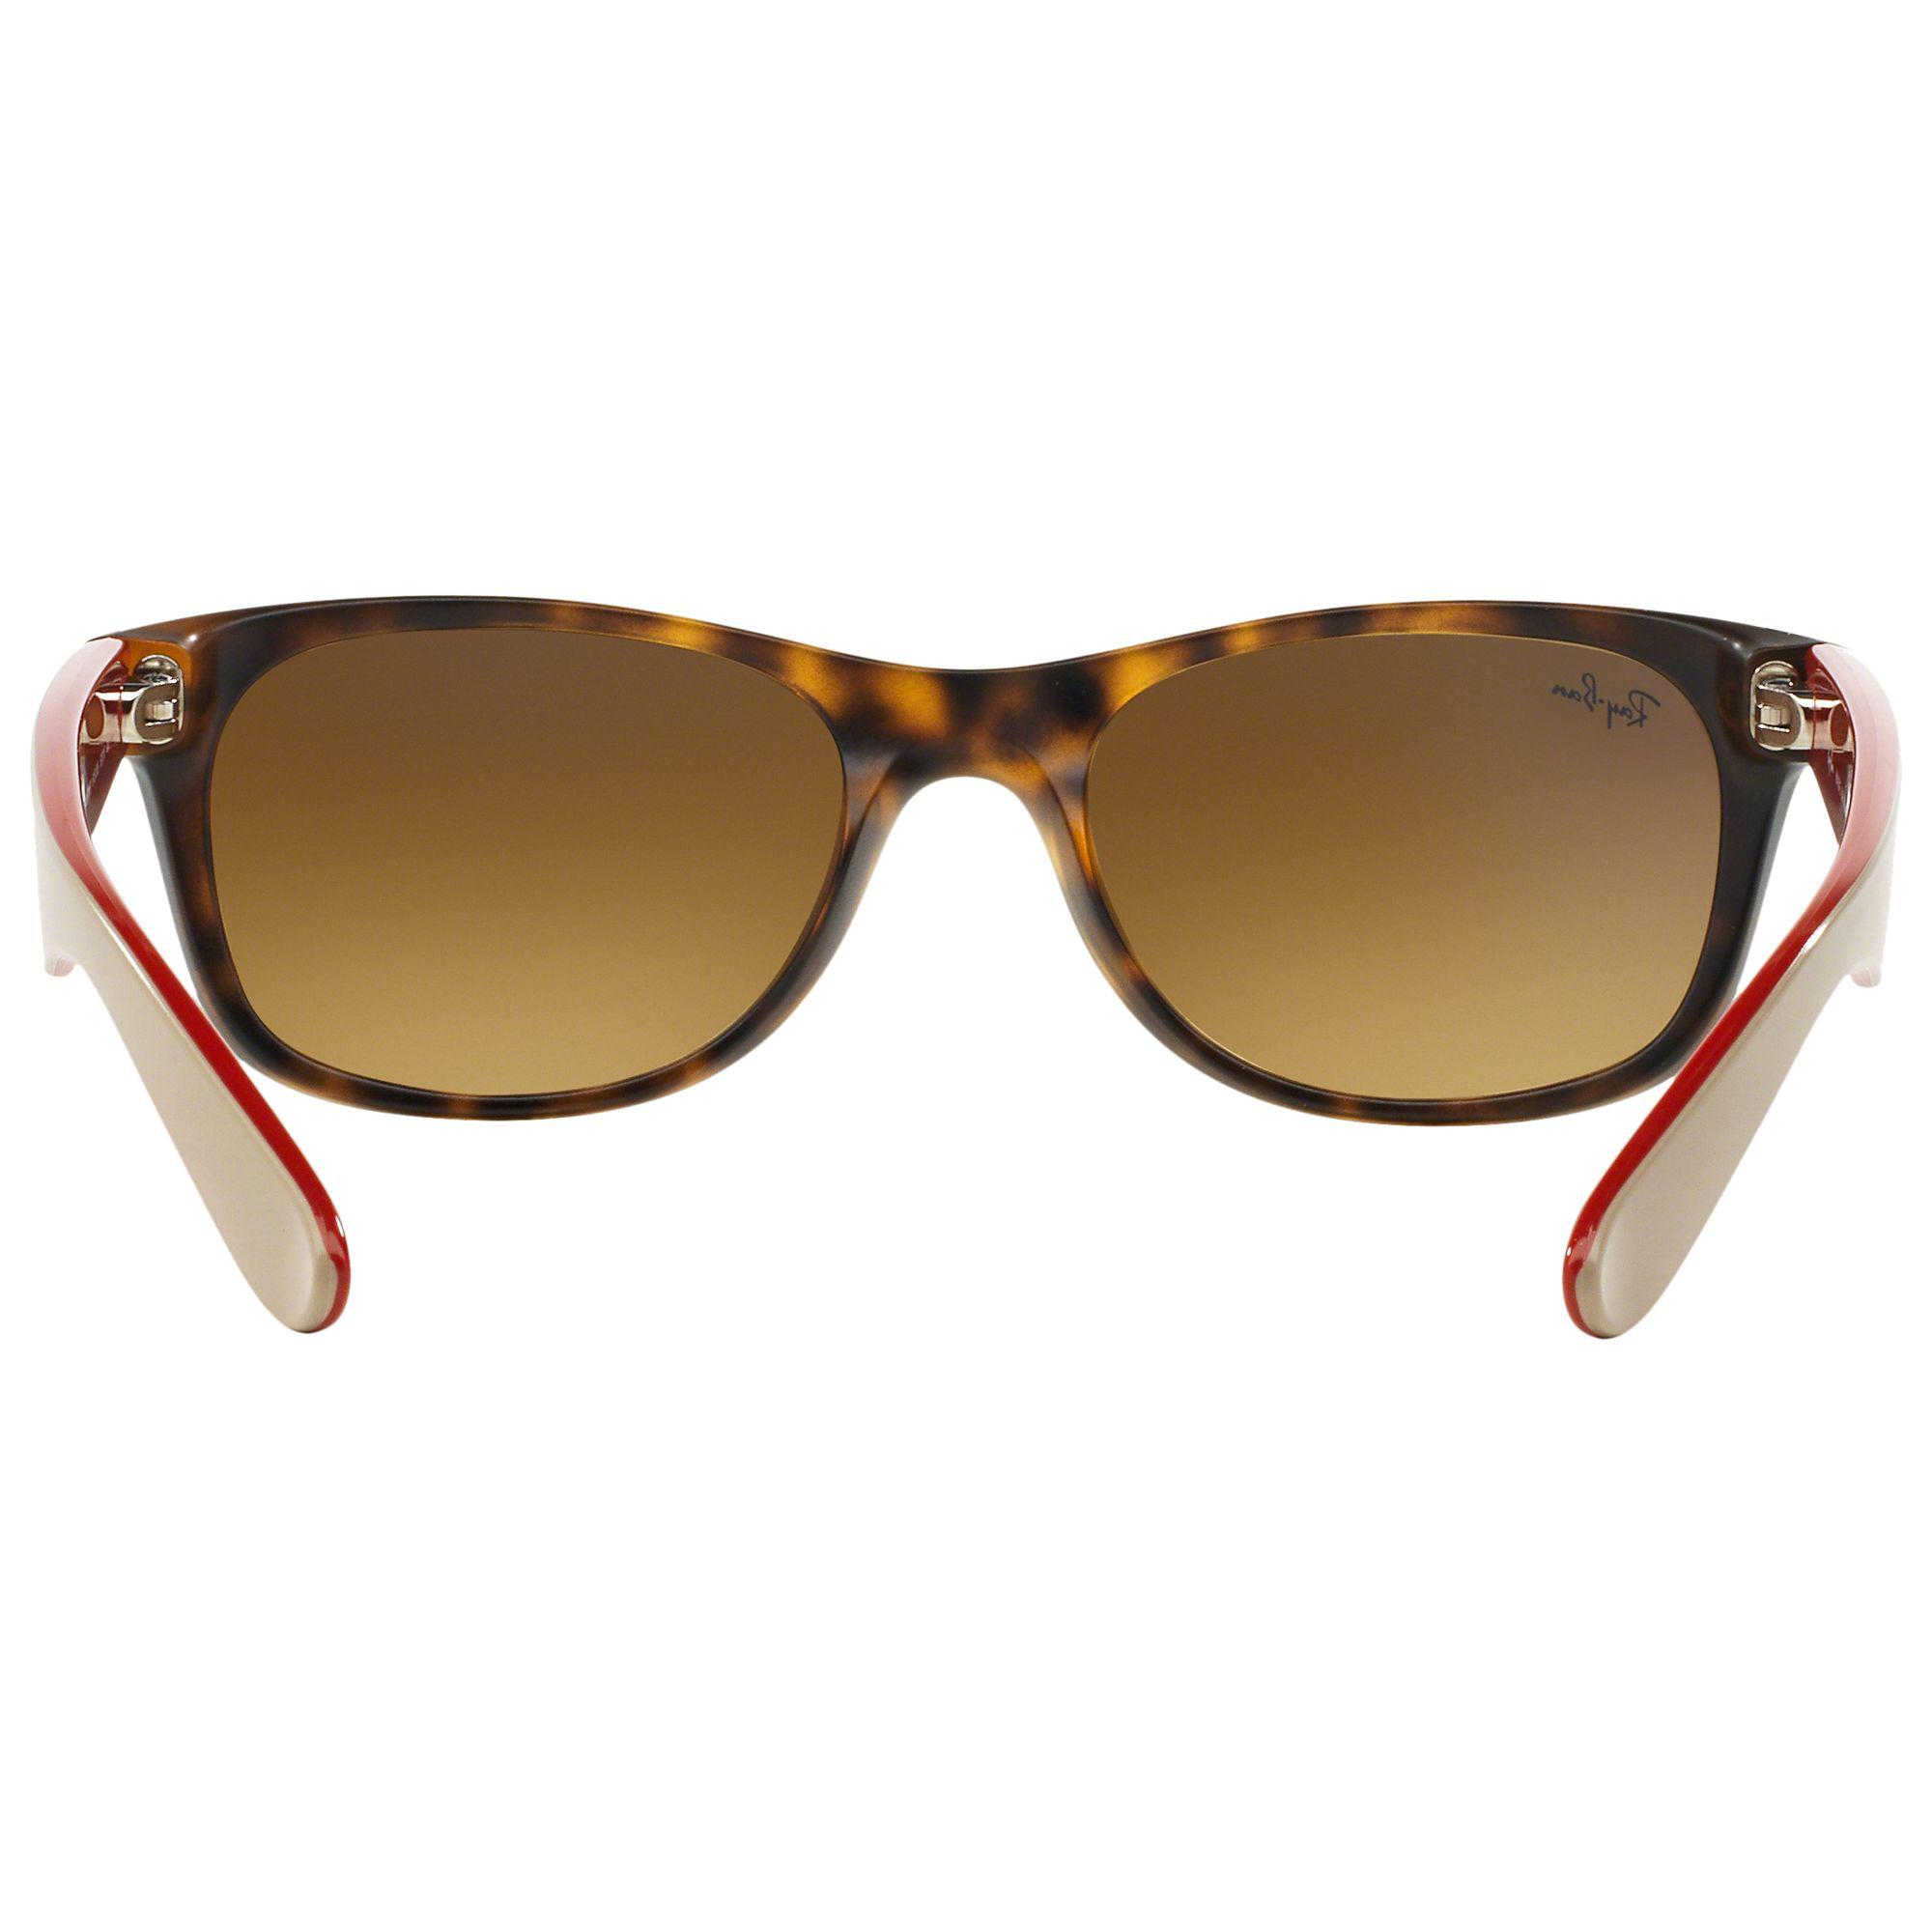 19d9046620 Ray-Ban Rb2132 New Wayfarer Square Sunglasses in Brown - Lyst